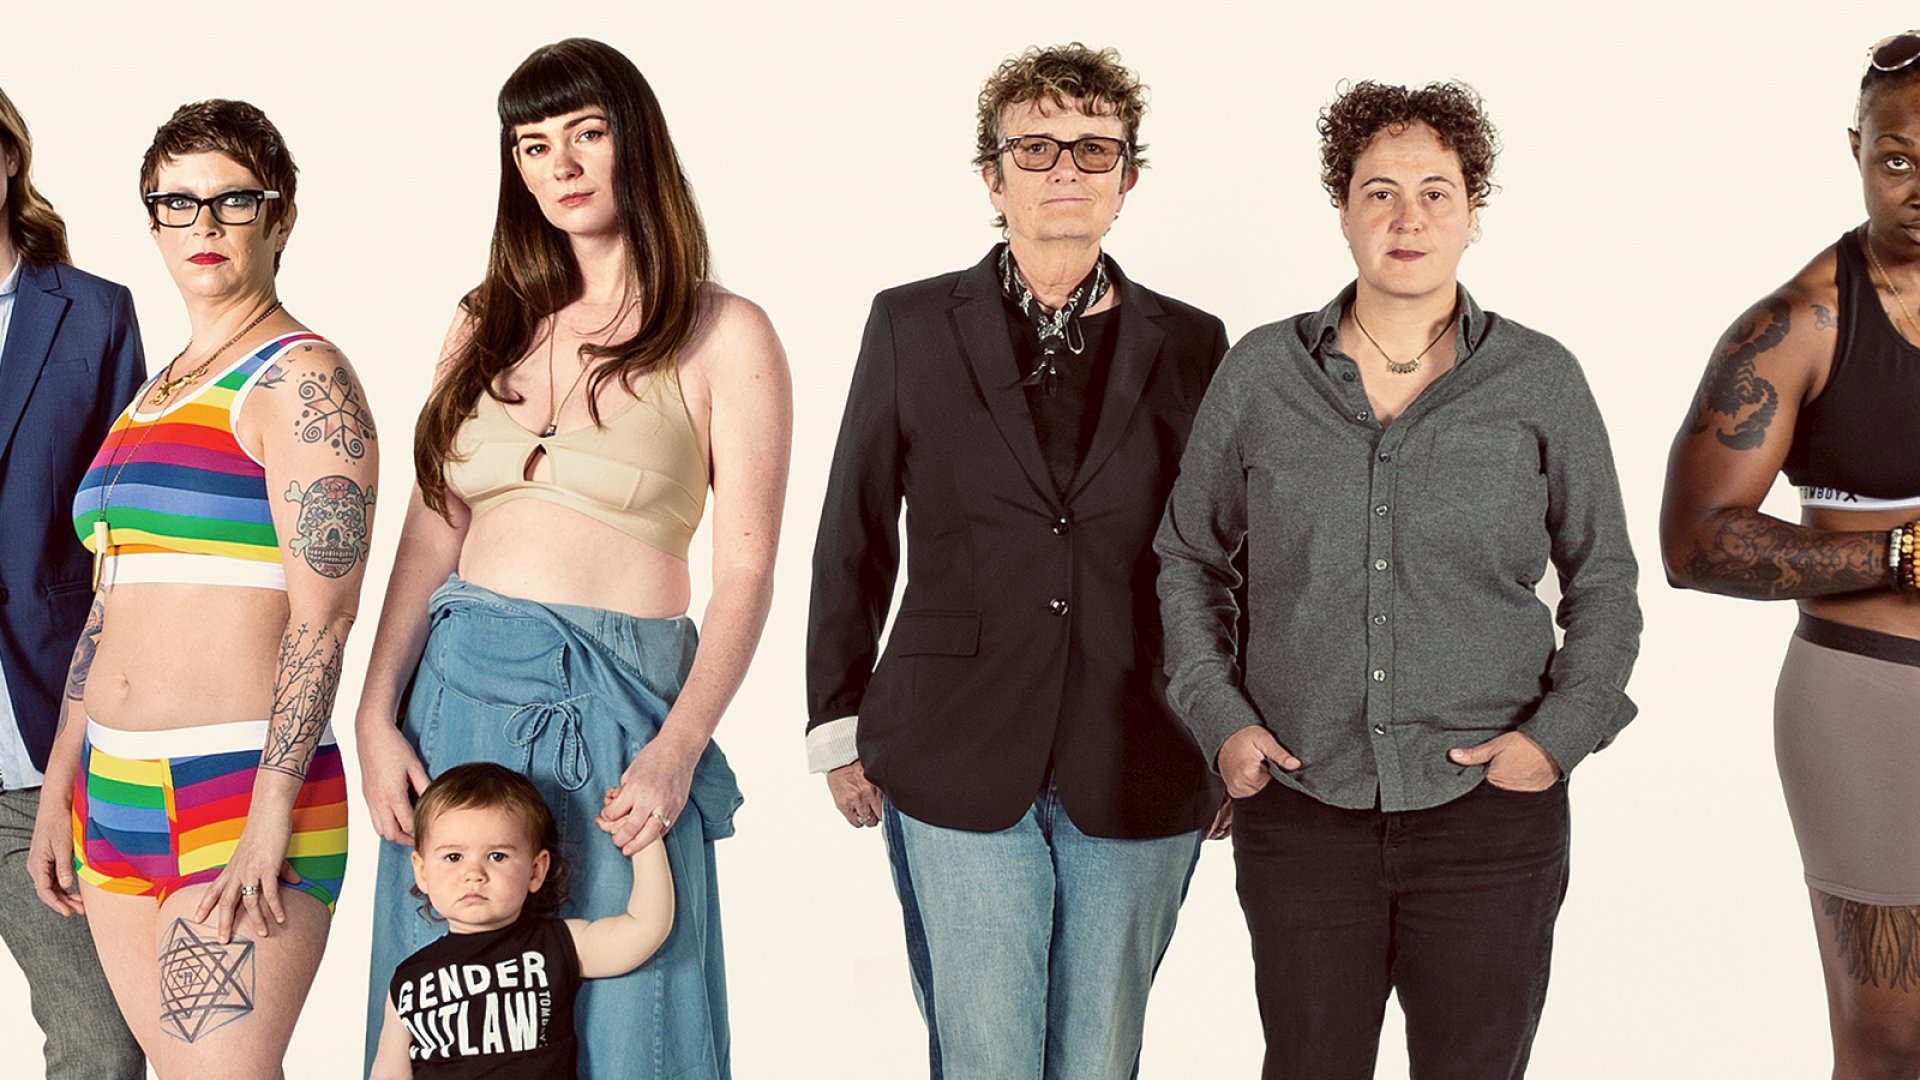 """Married co-founders Fran Dunaway (middle left) and Naomi Gonzalez (middle right) with TomboyX customers in their undergarments, including """"rainbow pride stripe"""" boy shorts."""